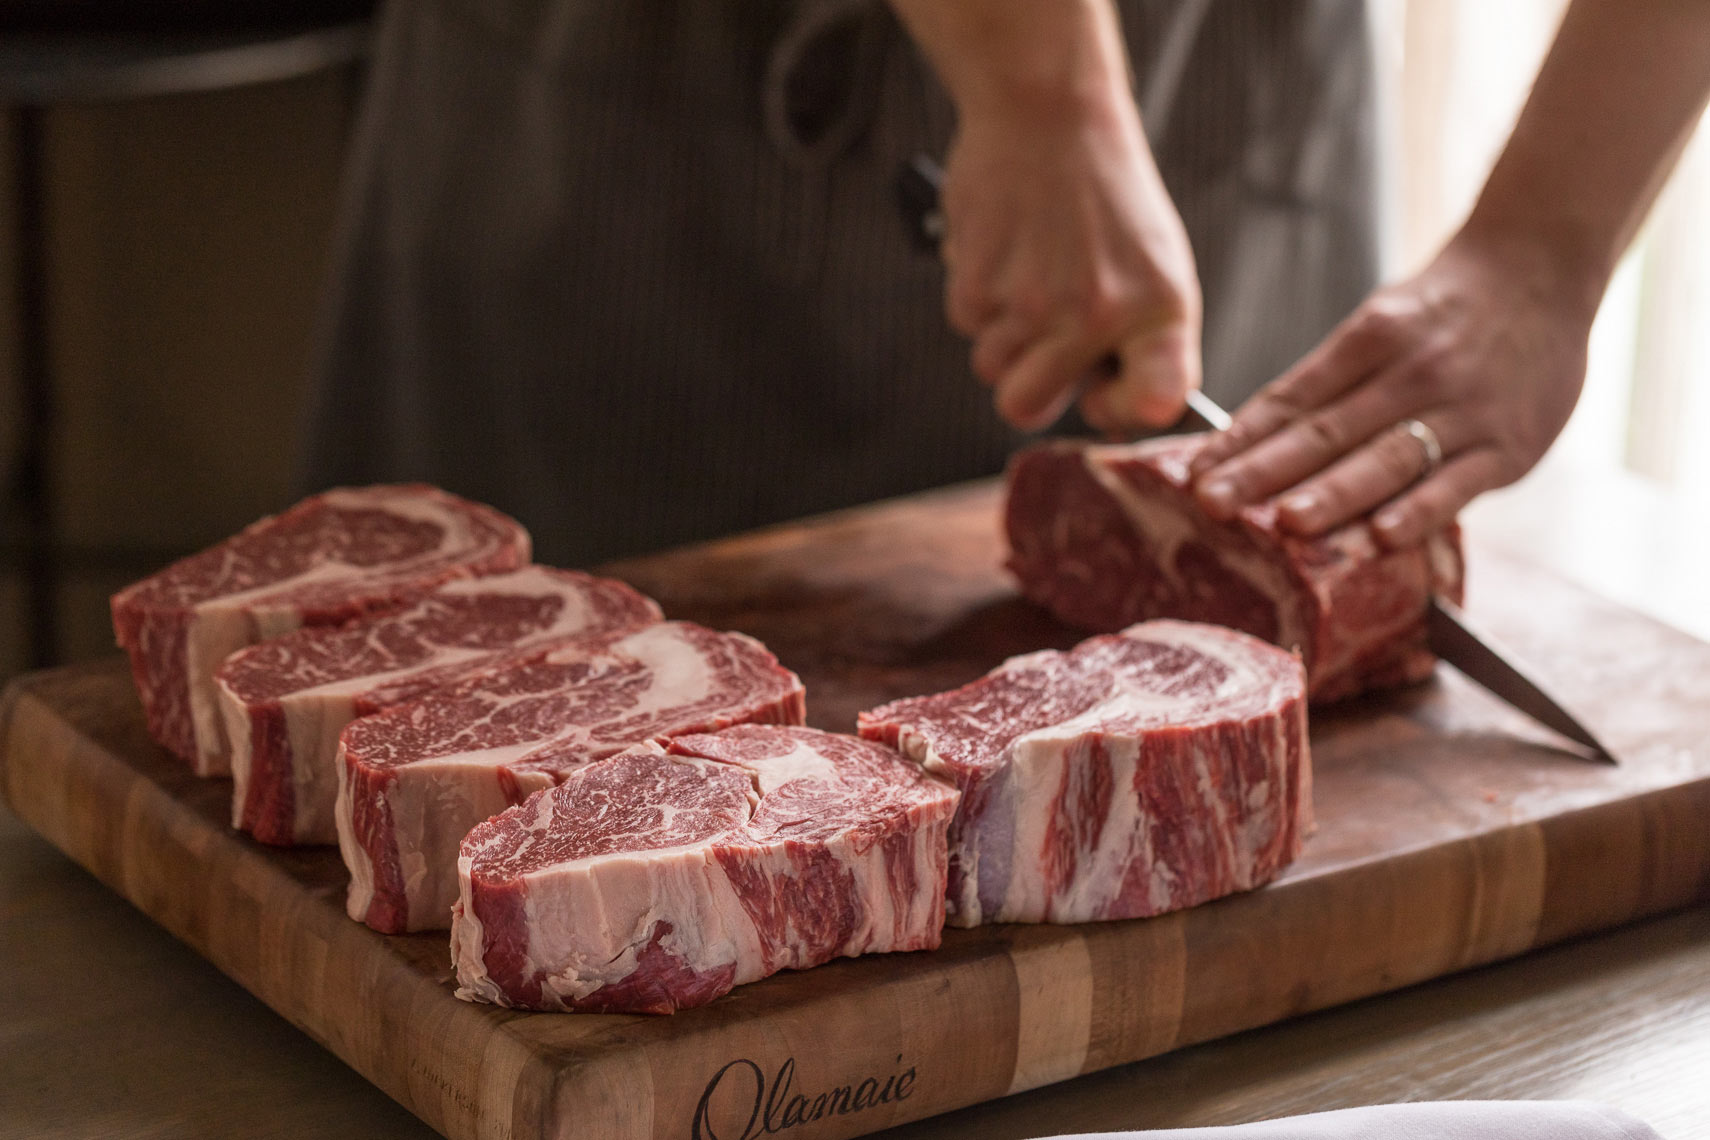 peeler-ranch-wagyu-beef-texas-jason-risner-photography-9356